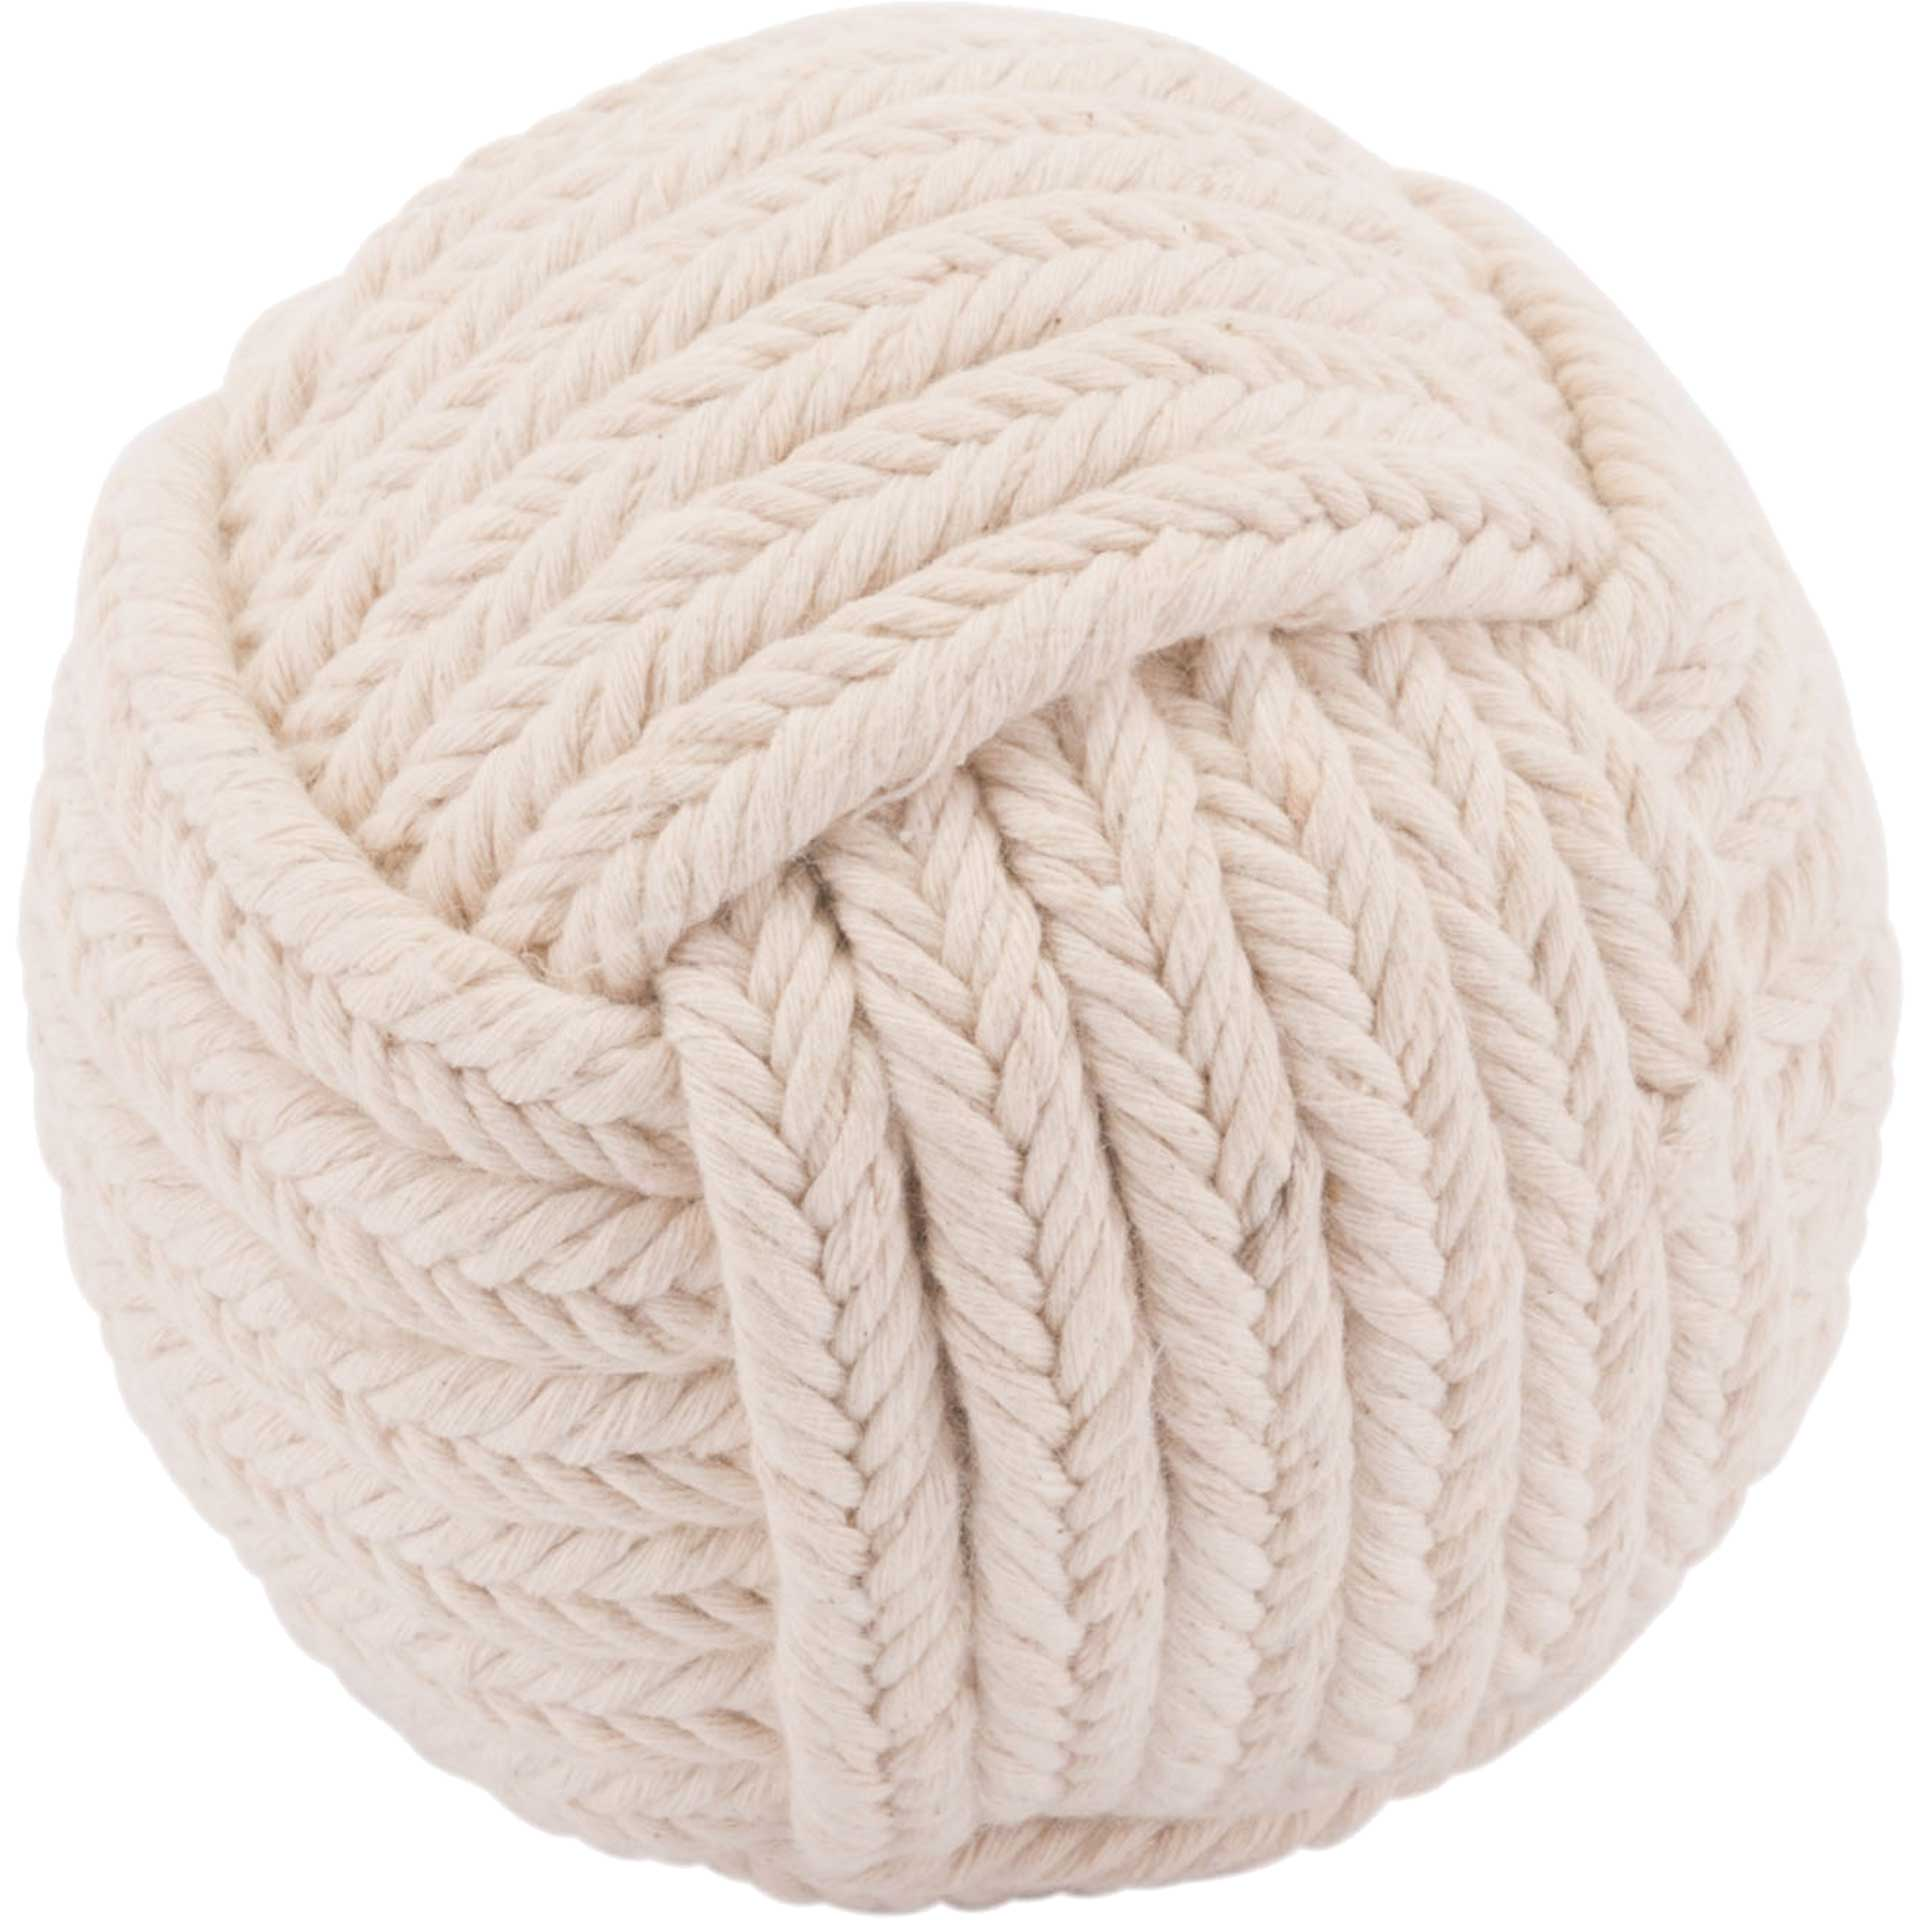 Tribal Ball Knot White